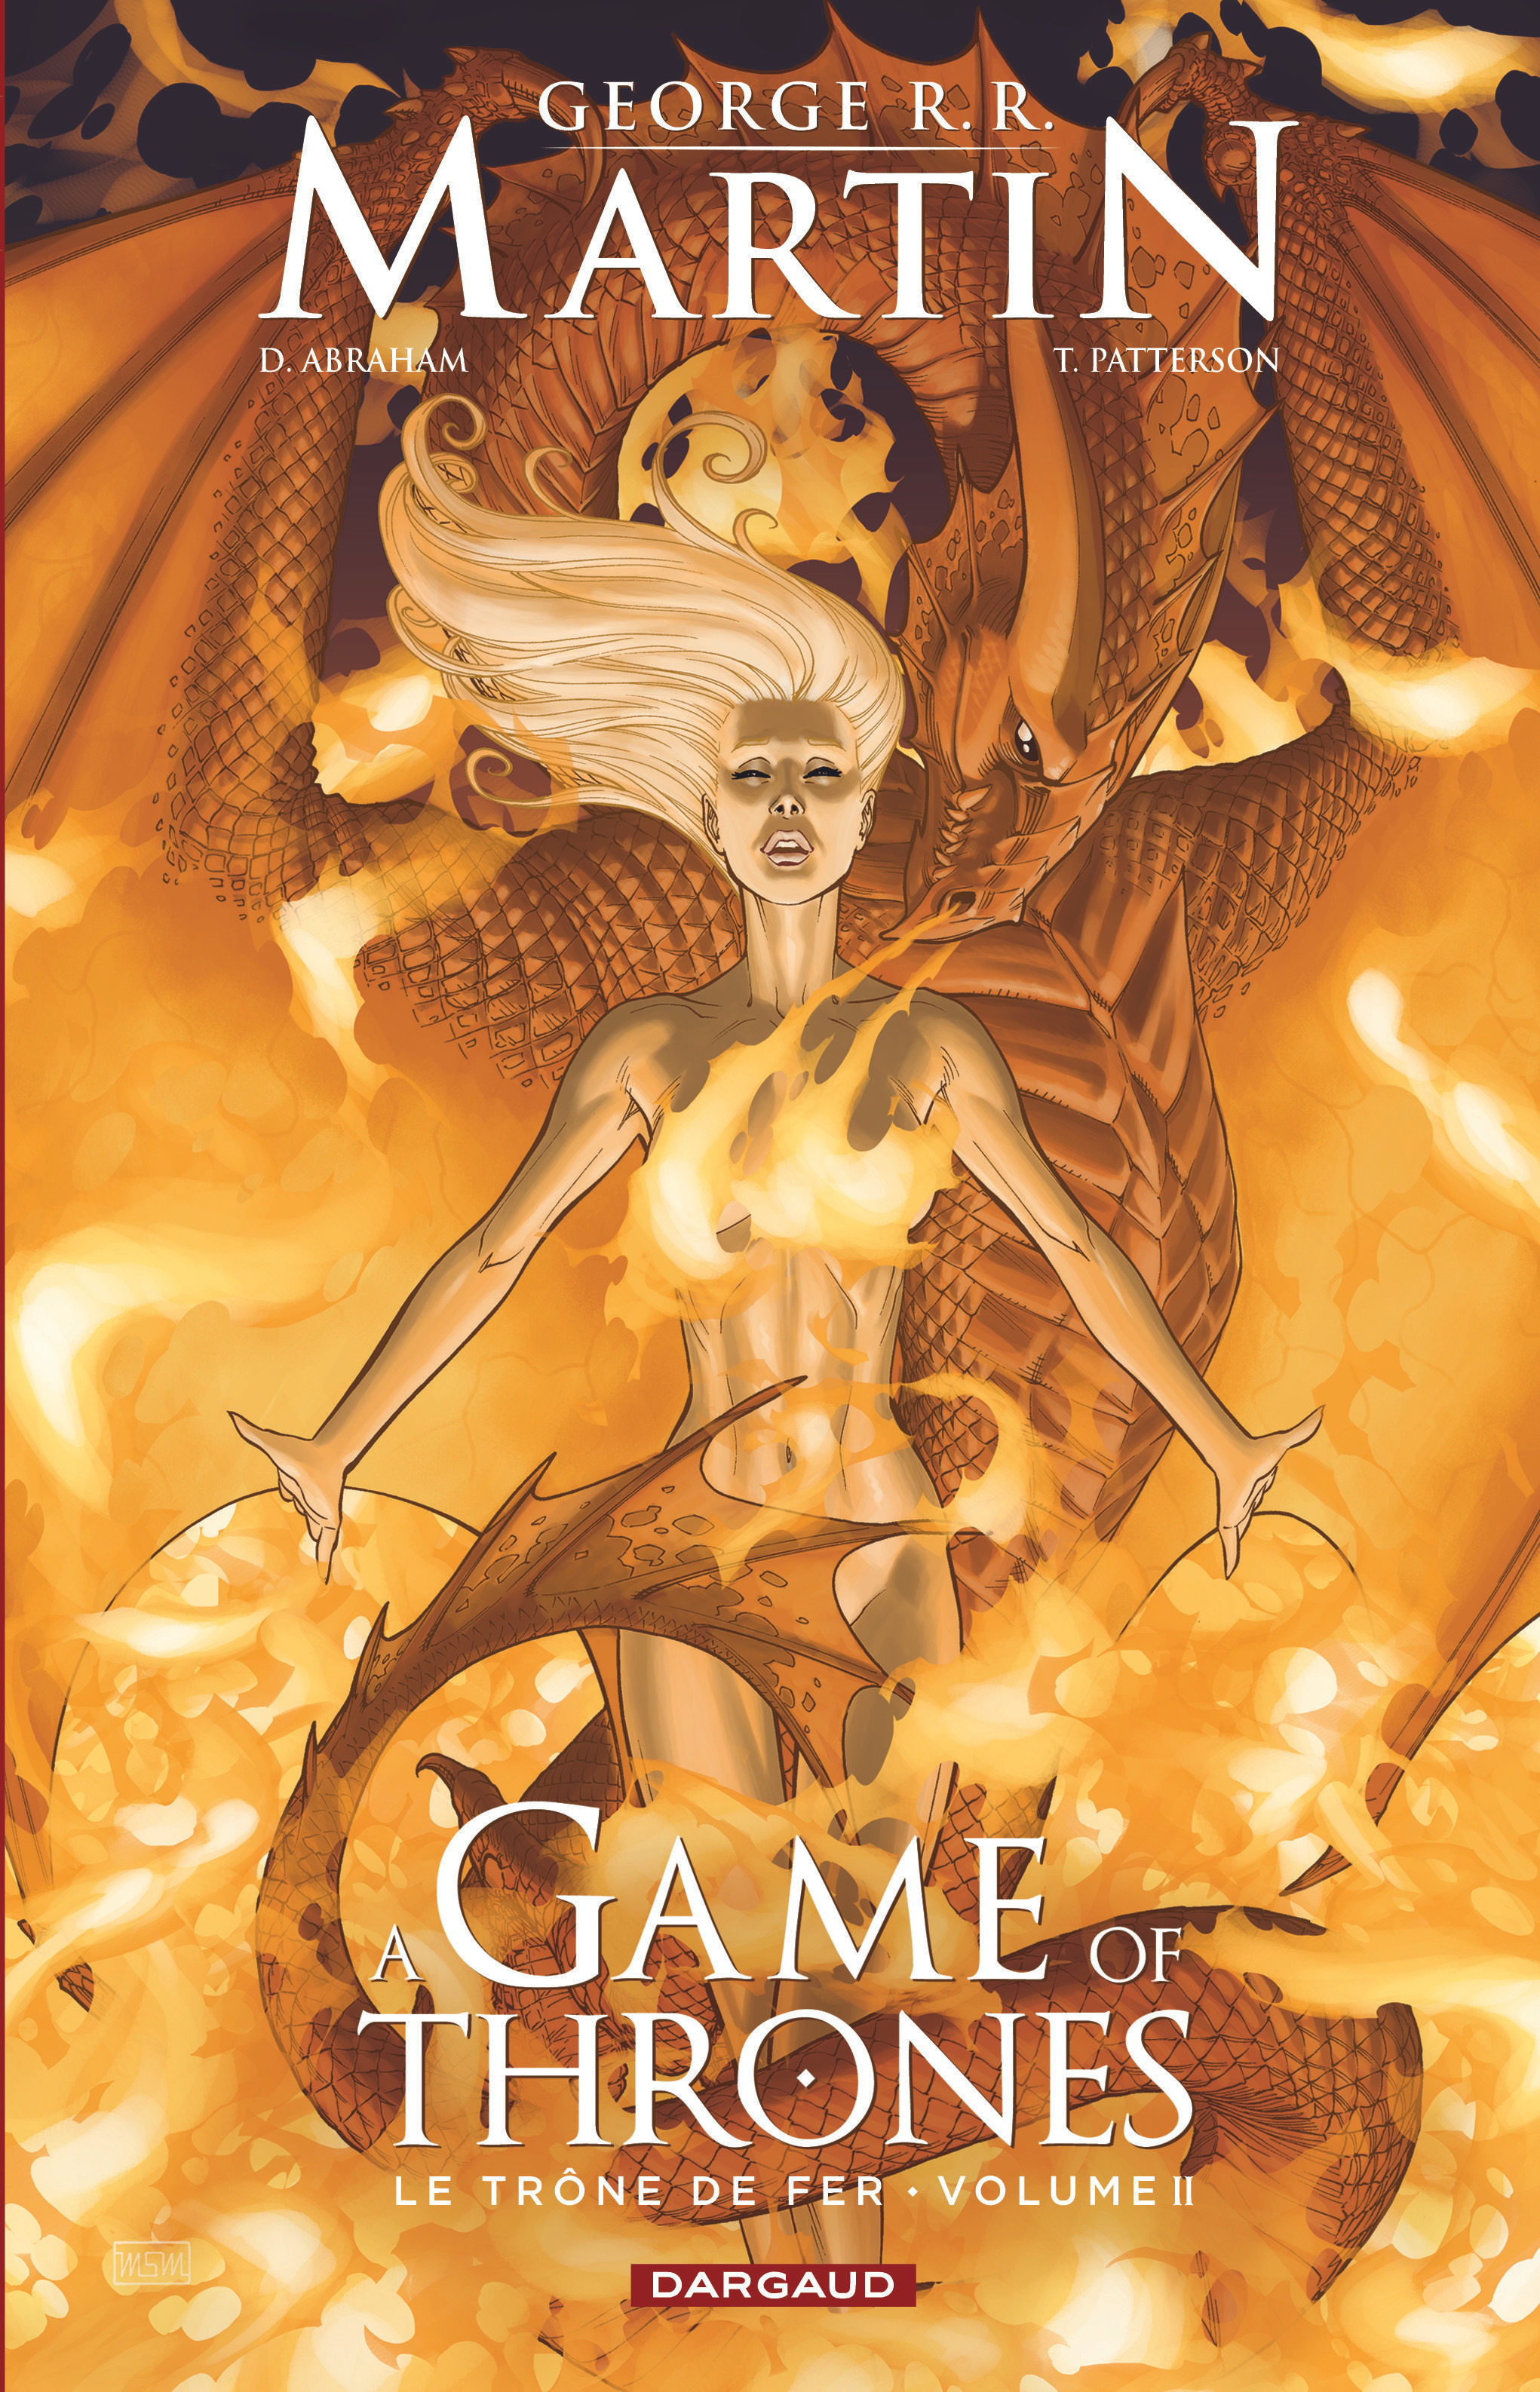 A GAME OF THRONES-LE TRONE FER - GAME OF THRONES (A) - LE TRONE DE FER - TOME 2 - A GAME OF THRO